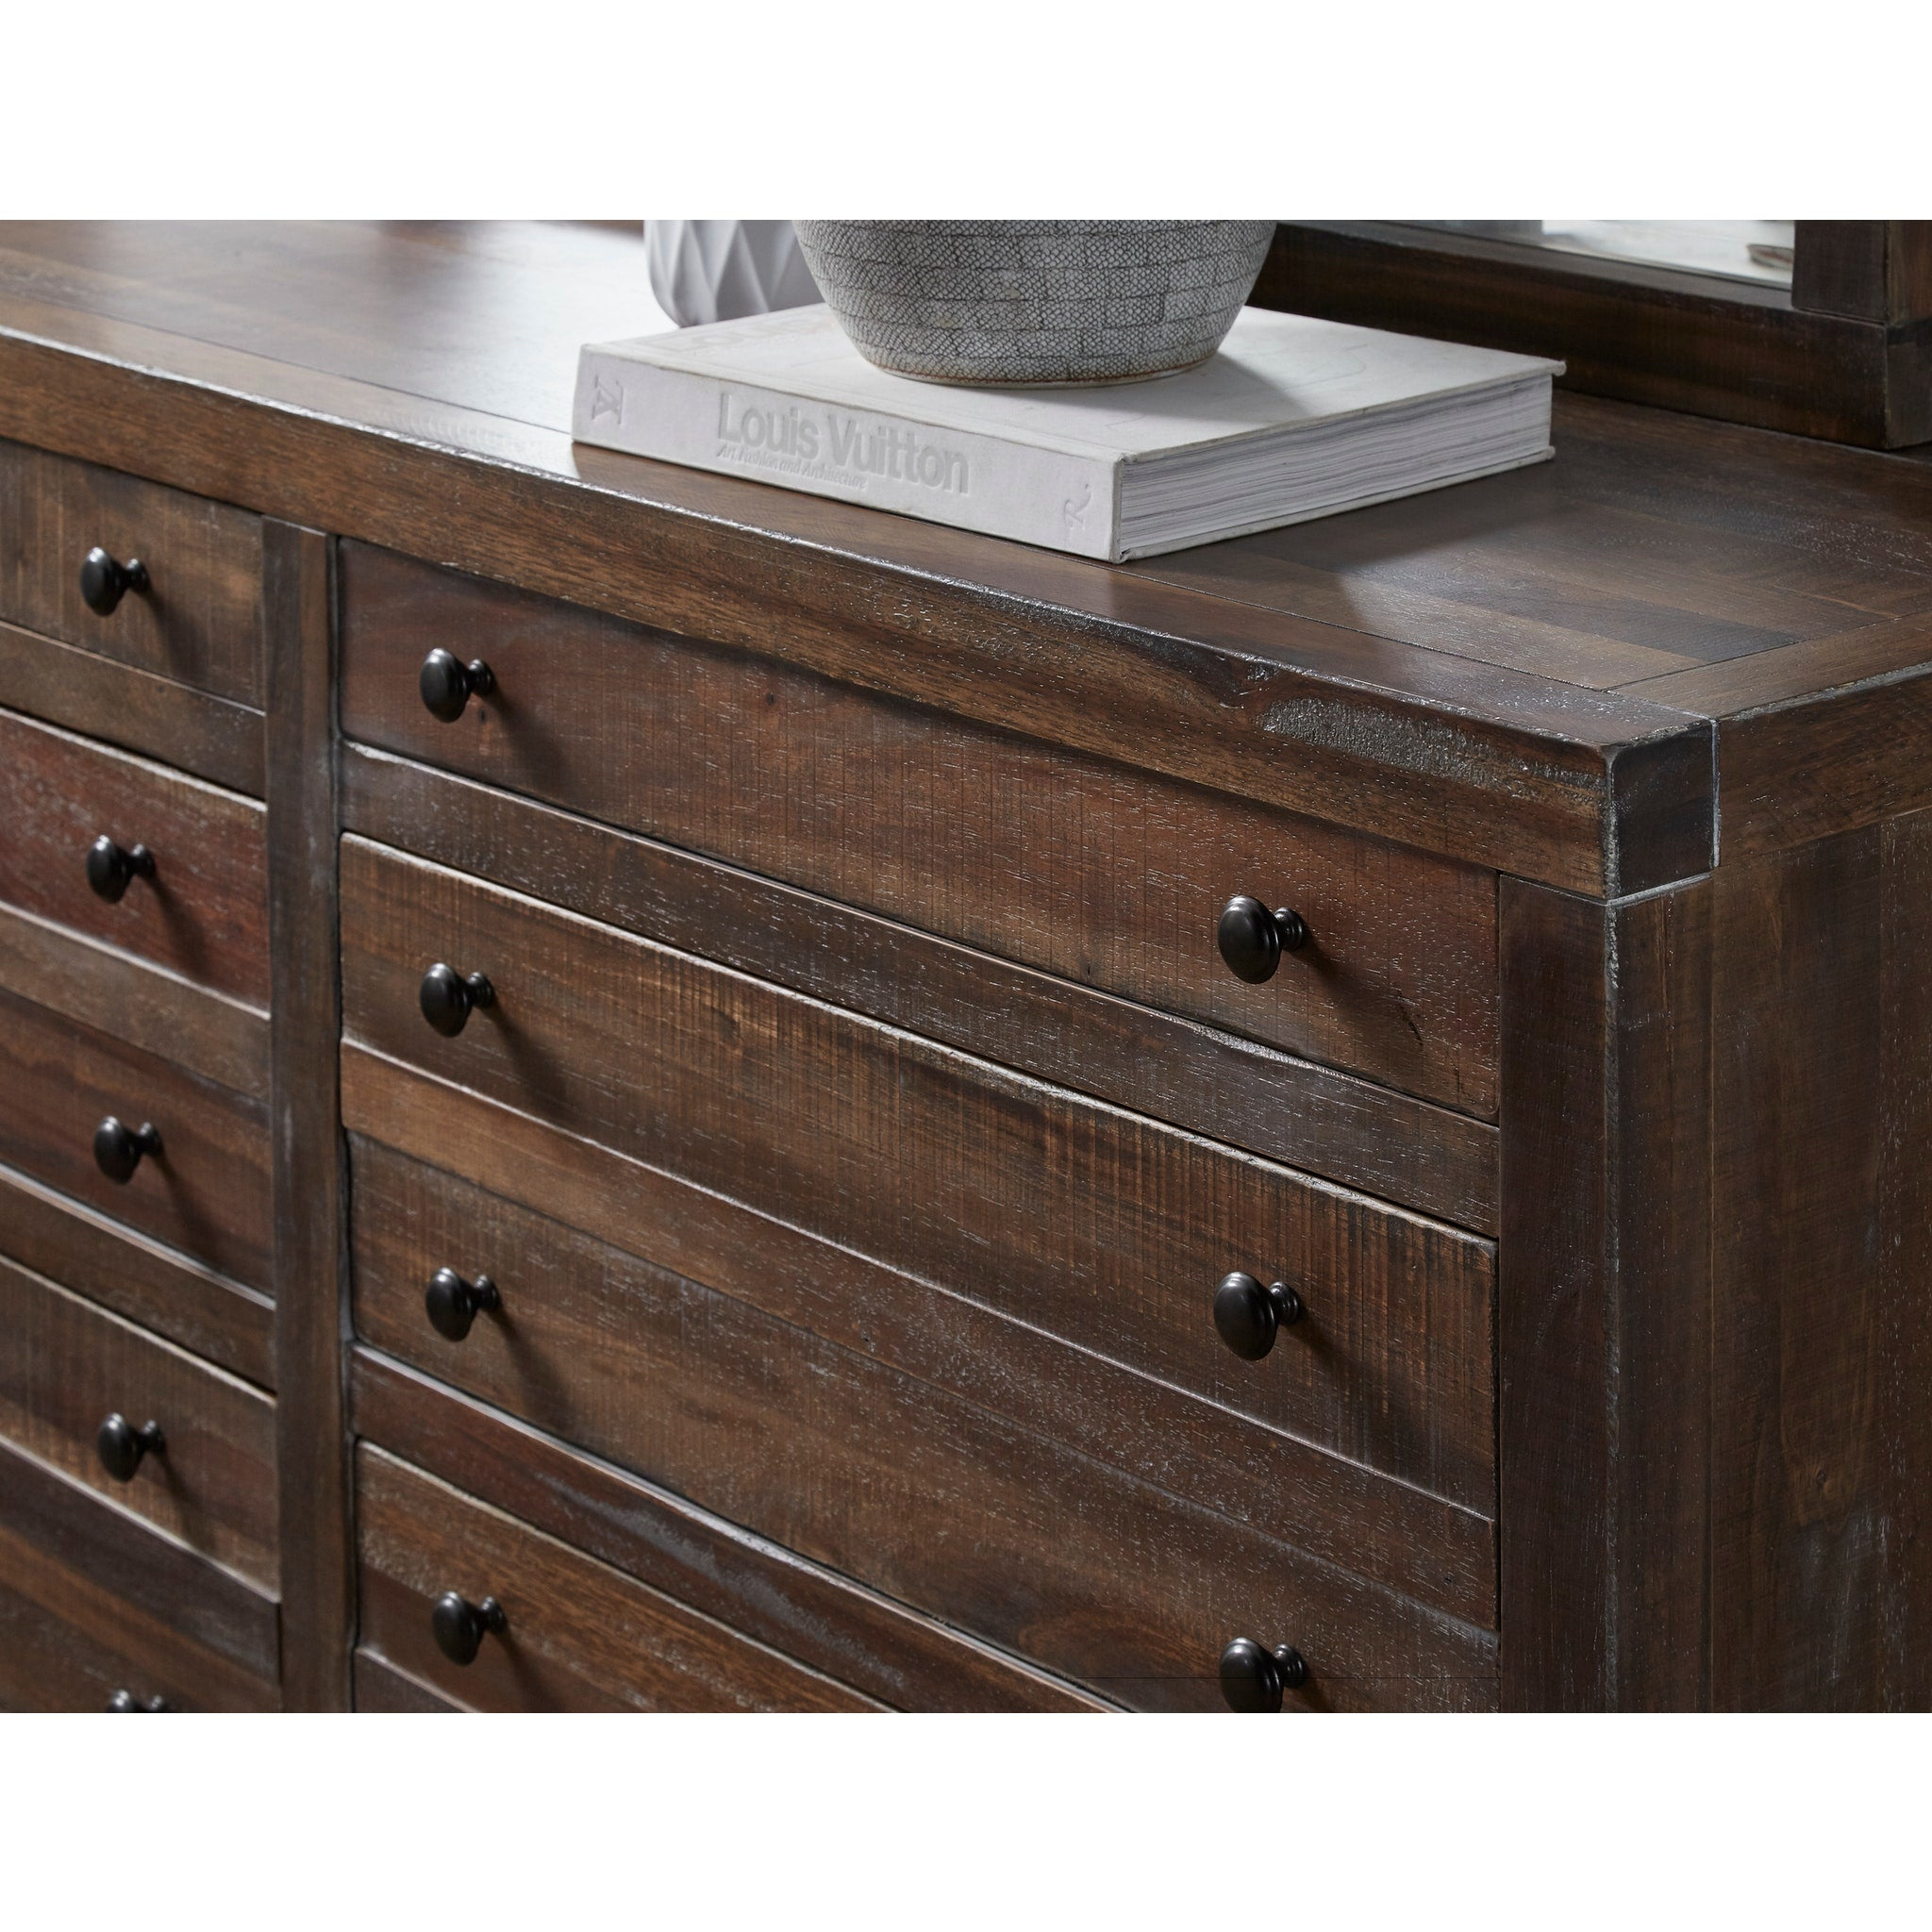 Townsend Eight Drawer Solid Wood Dresser in Java